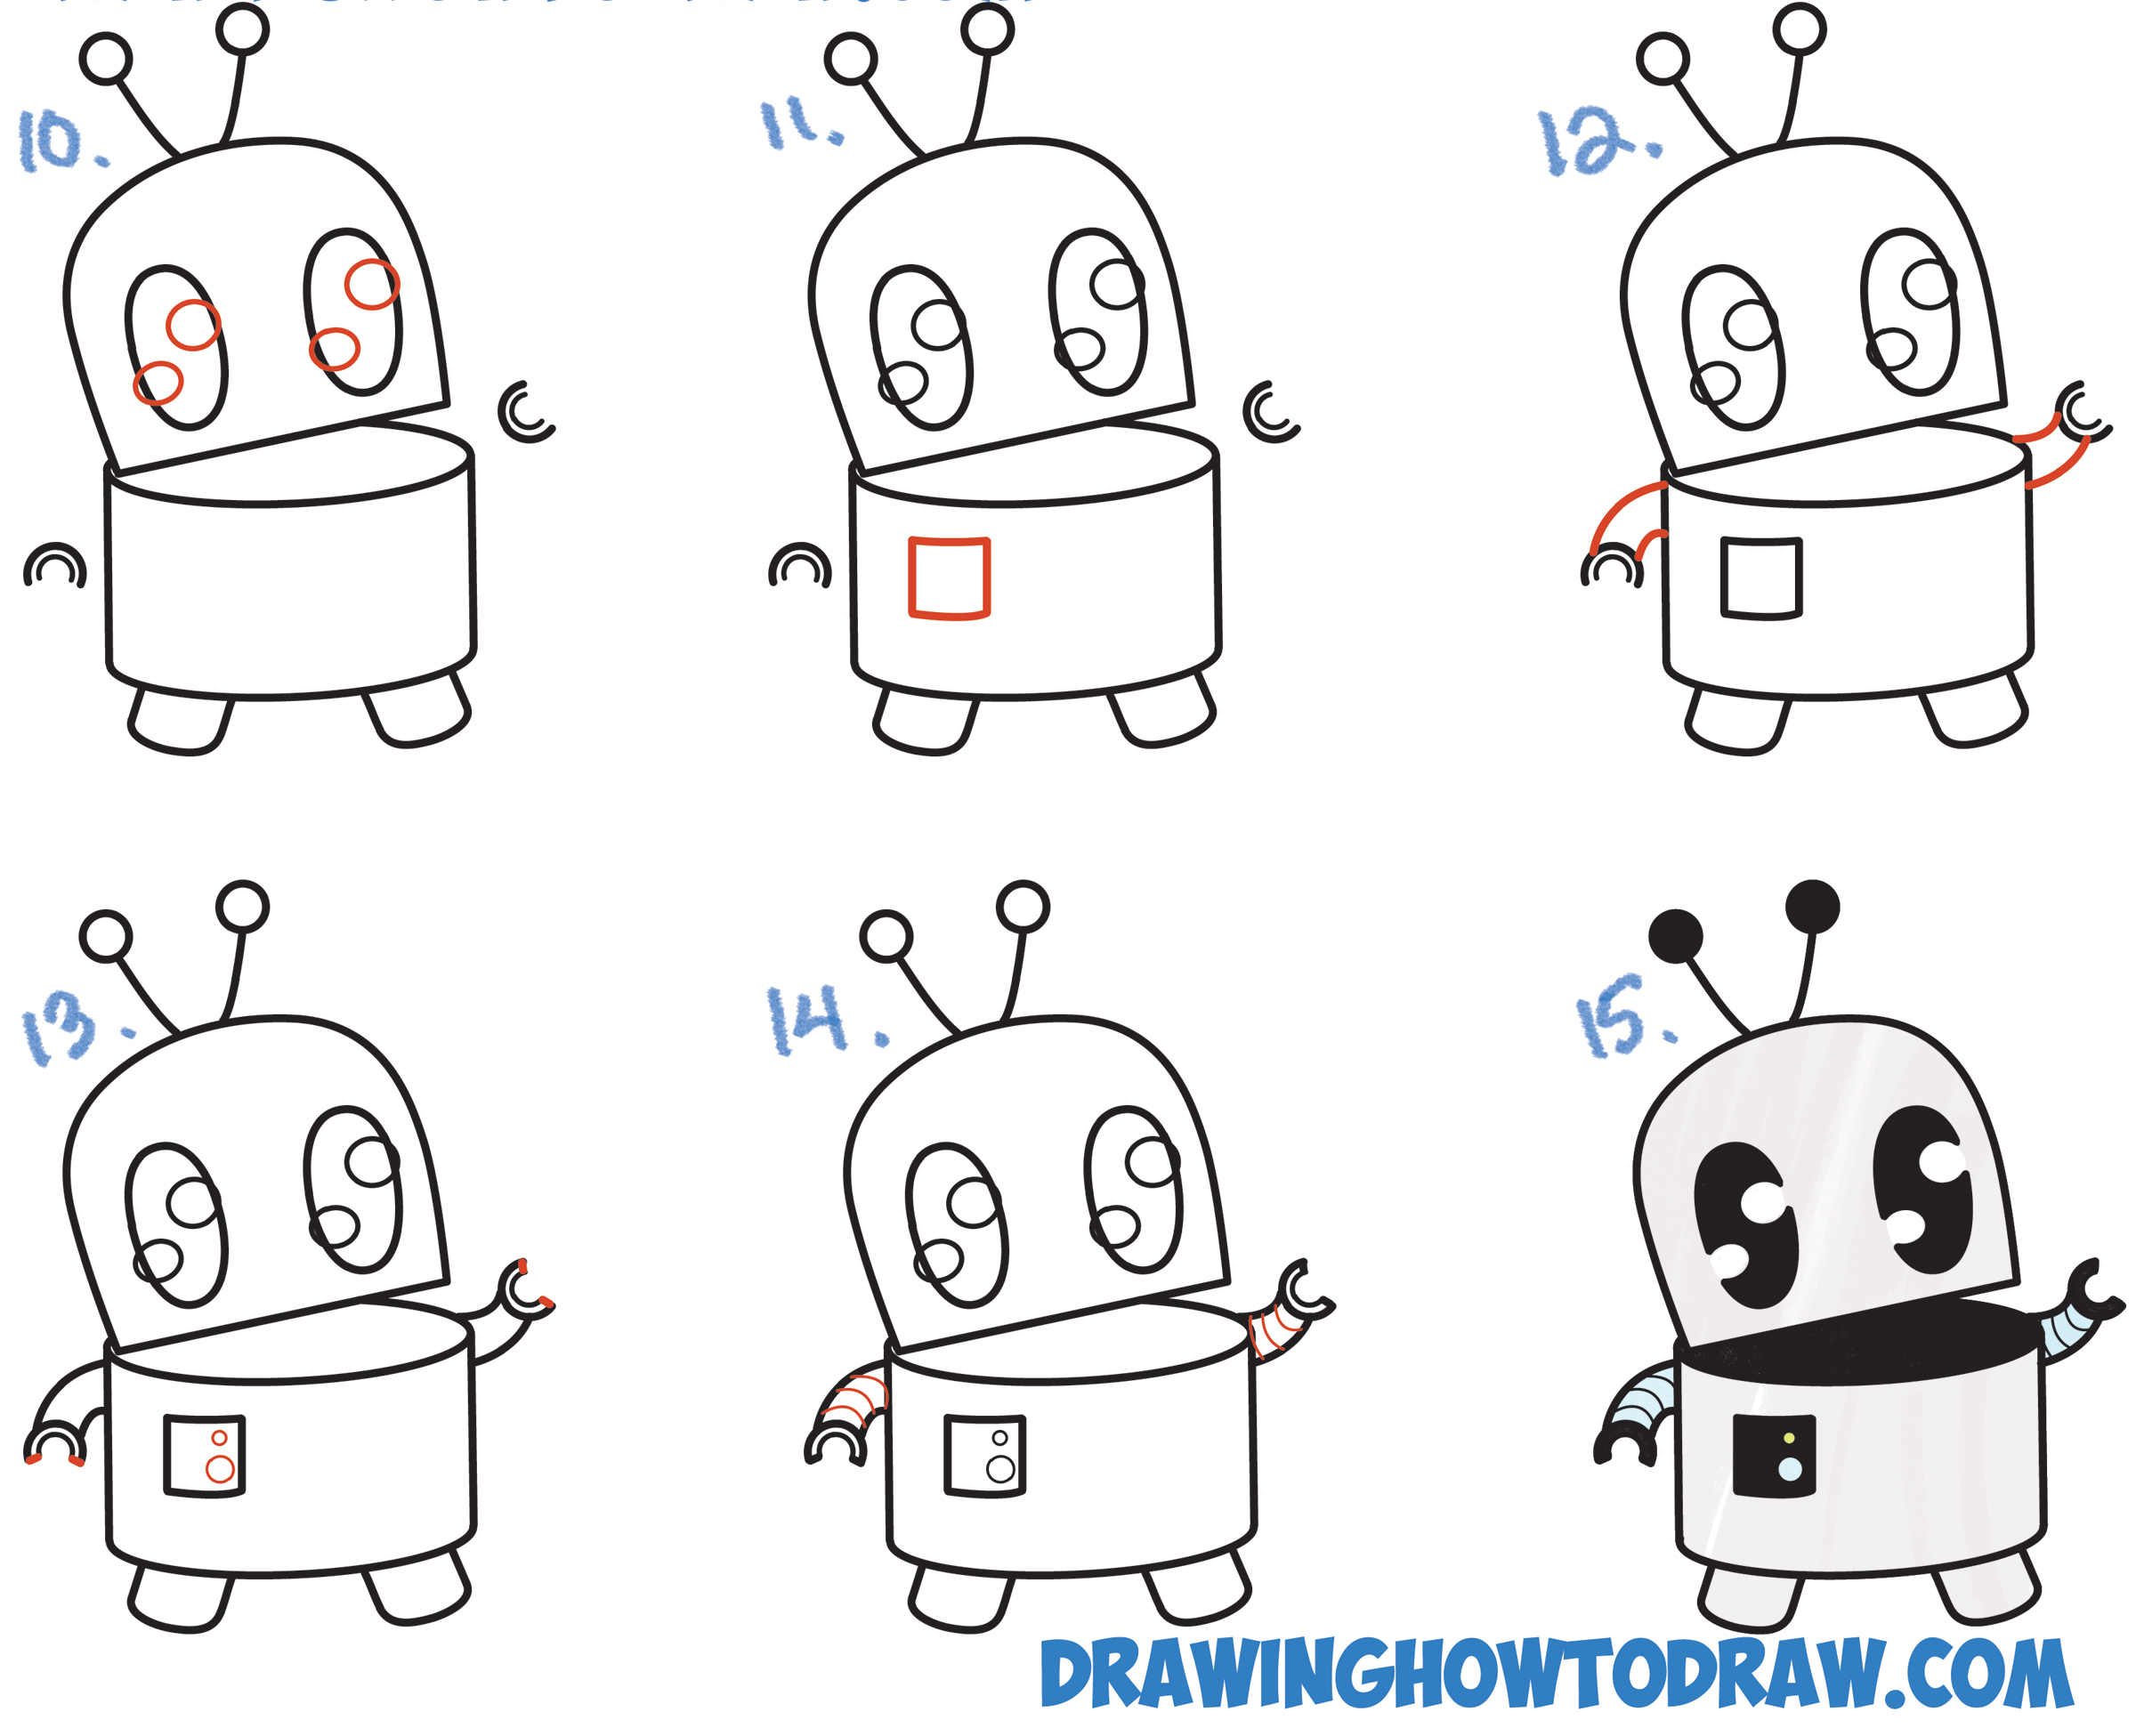 Uncategorized Draw A Robot how to draw a cute cartoon robot easy step by drawing learn simple steps lesson with letters and numbers